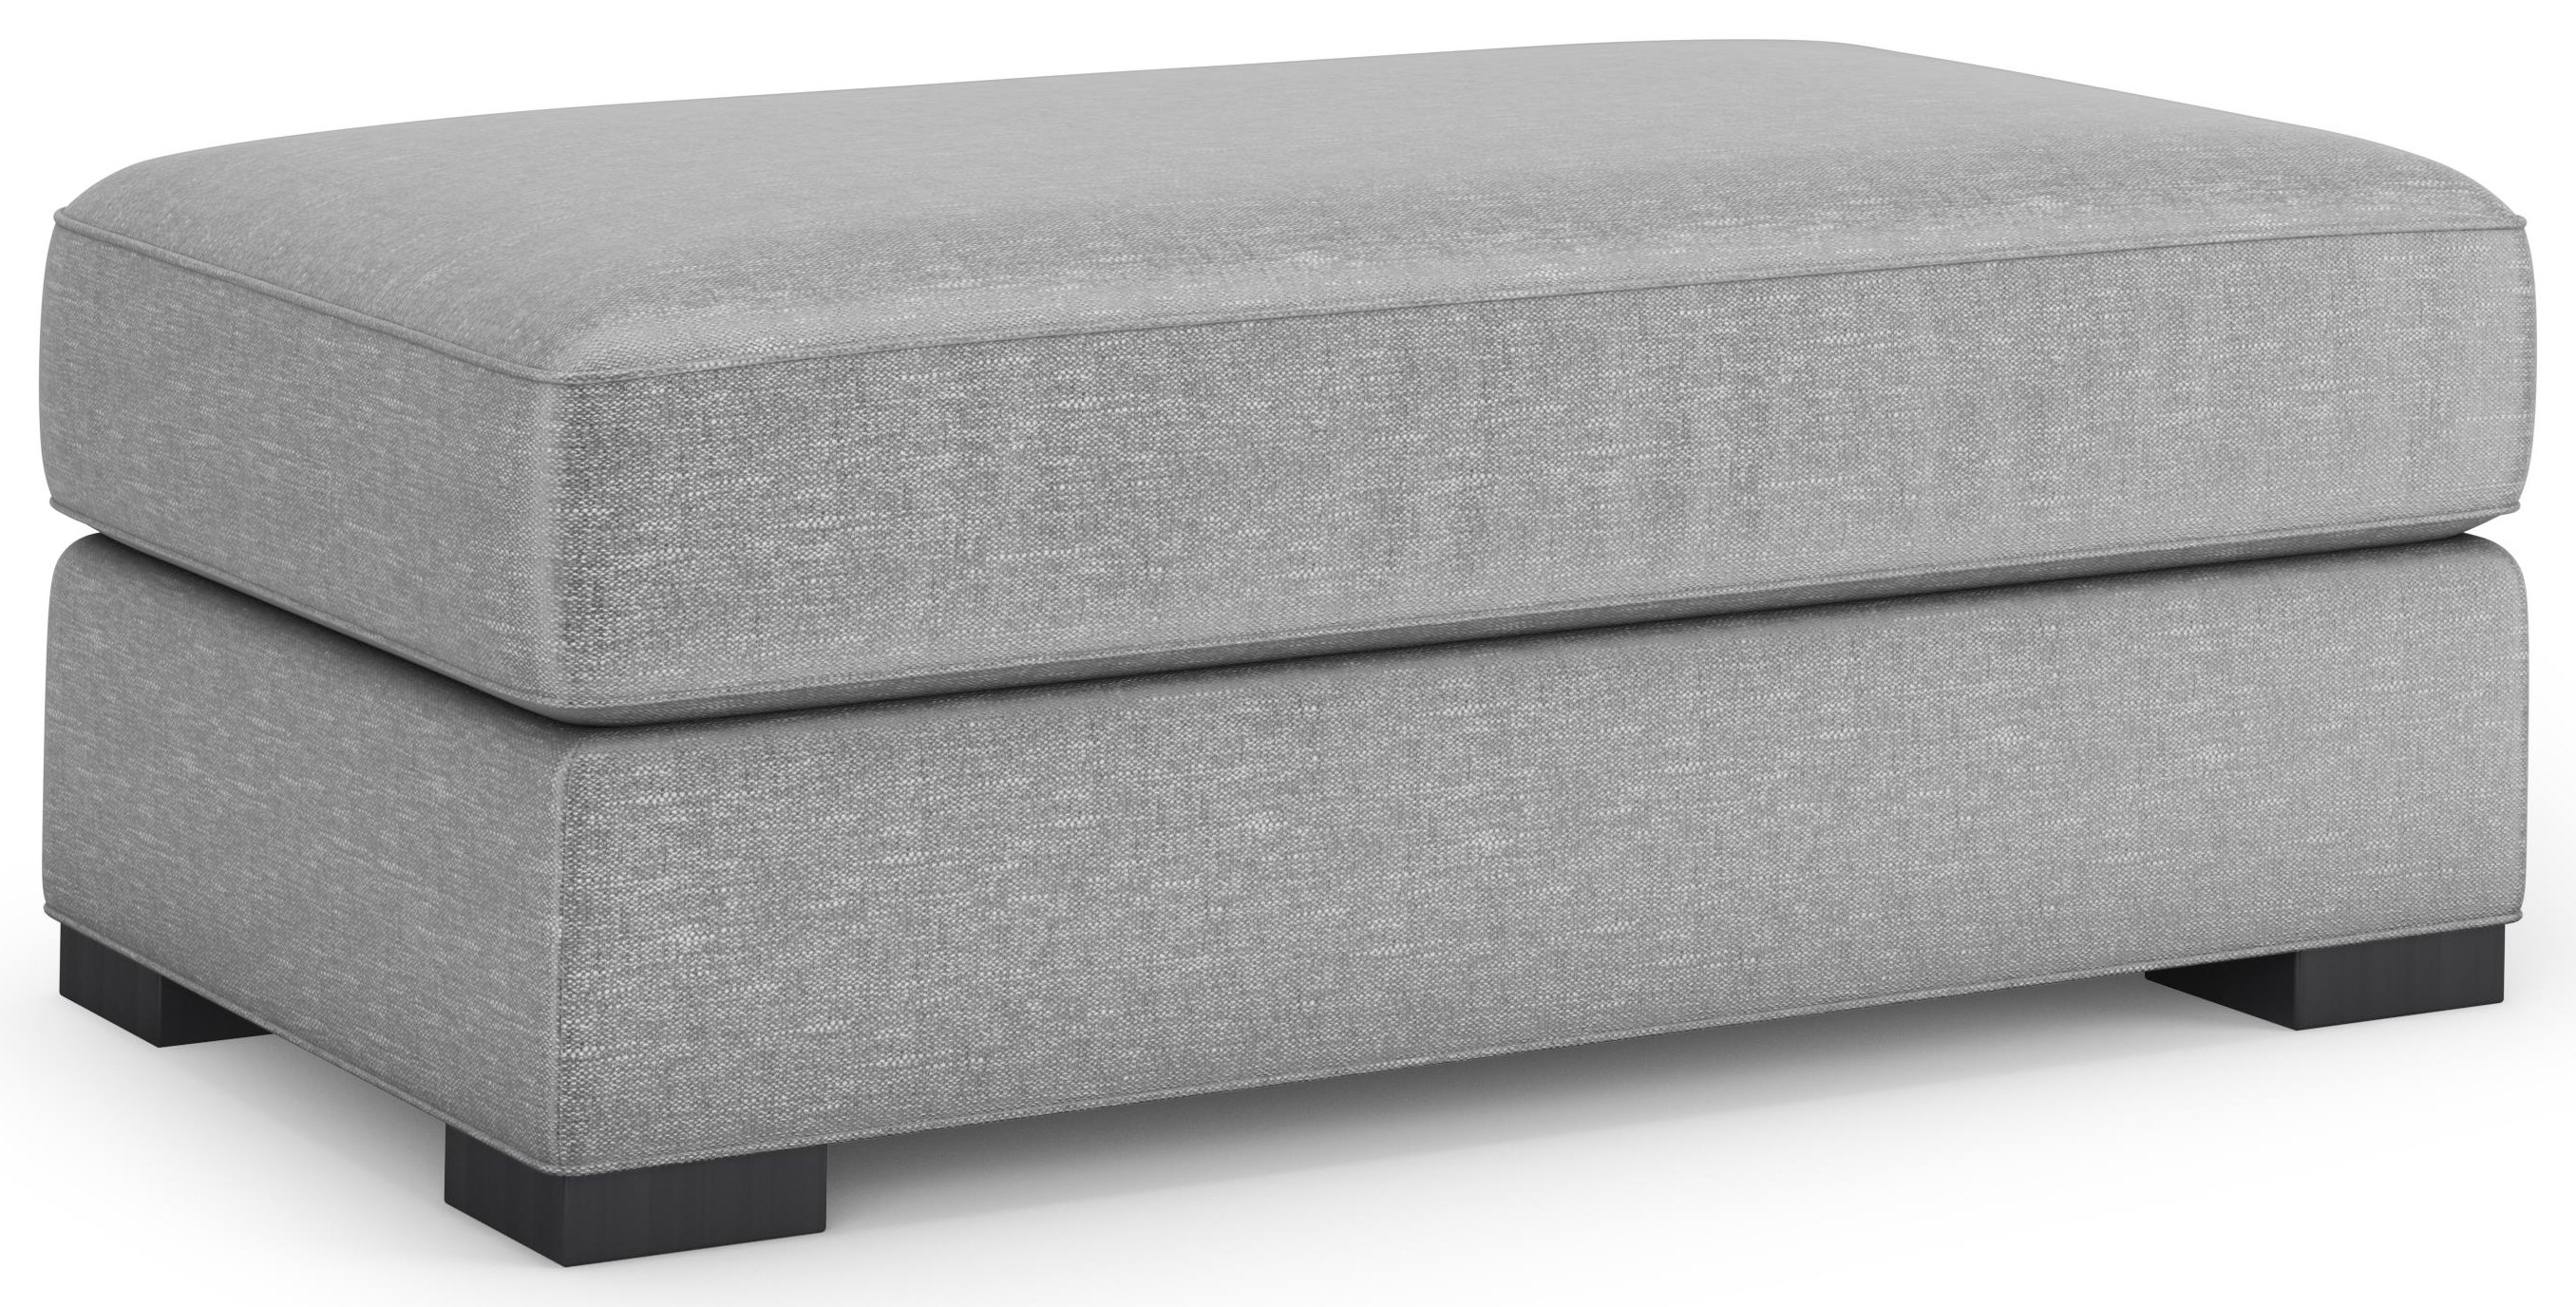 282 Monroe Oversized Ottoman by Sunset Home at Walker's Furniture